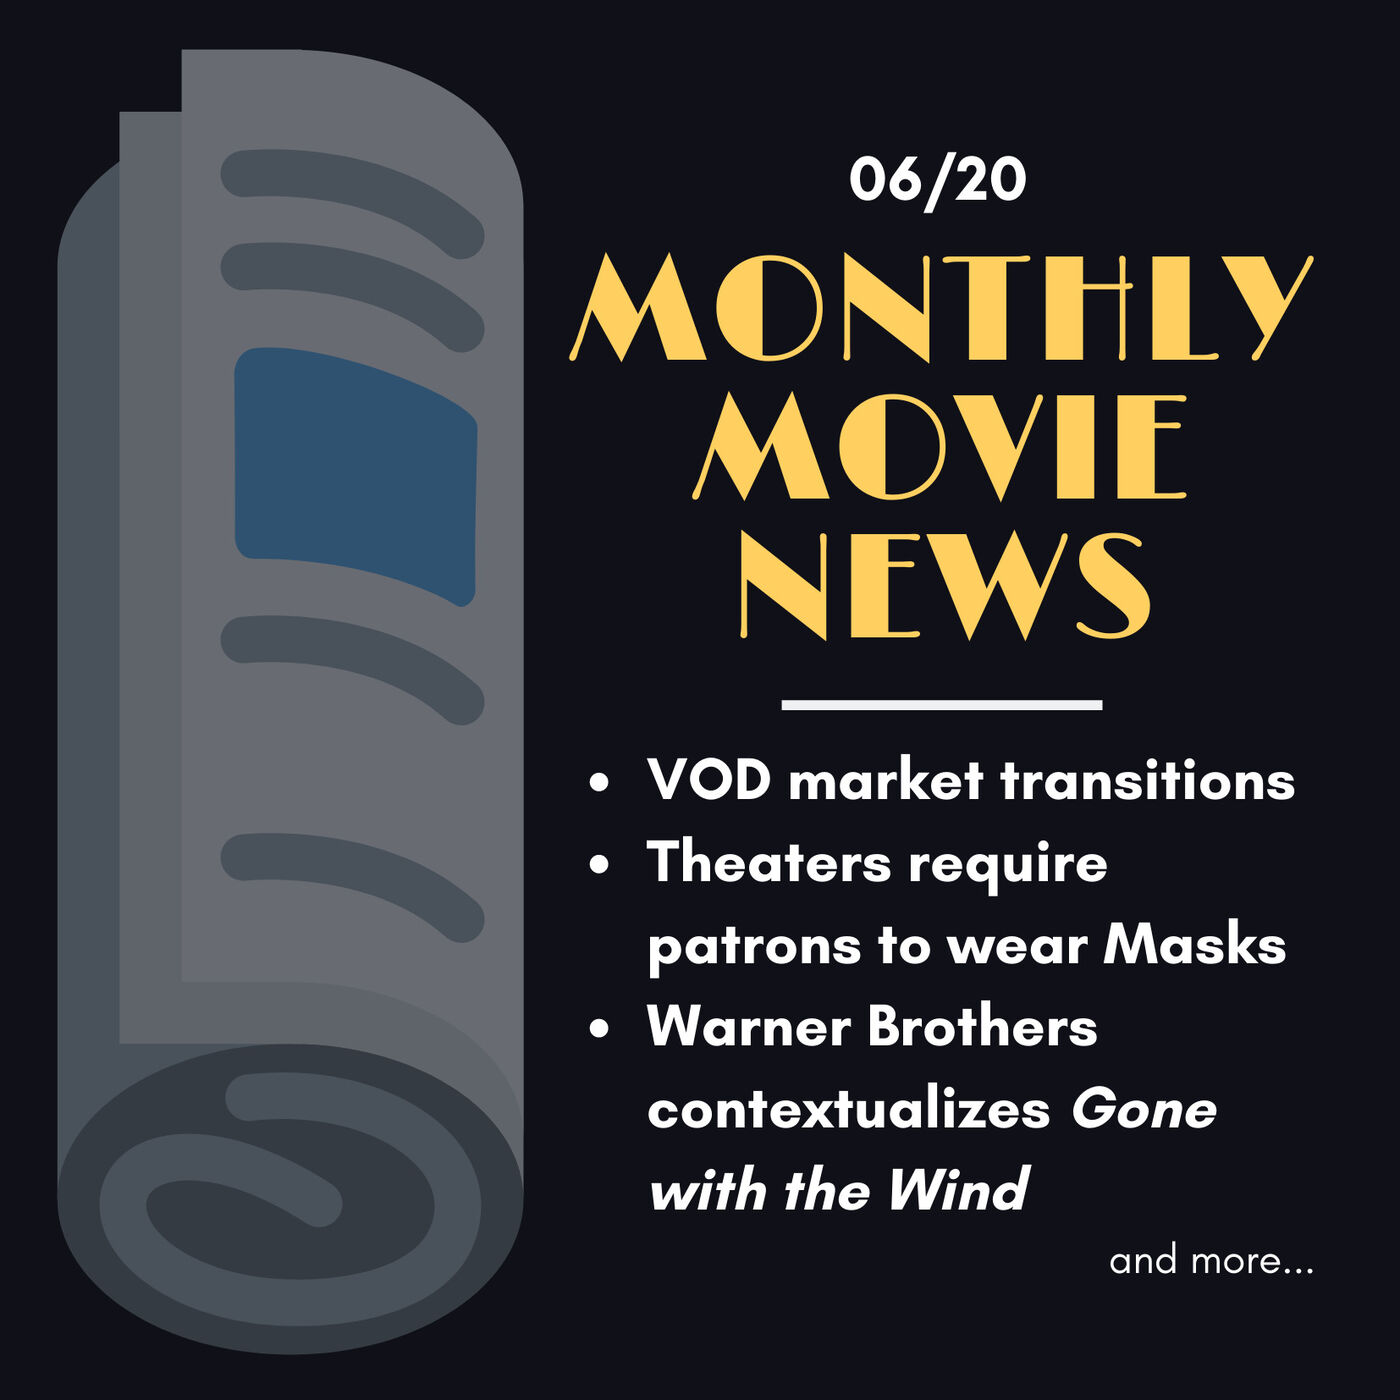 MMN: VOD, Masks in Theaters, Gone with the Wind